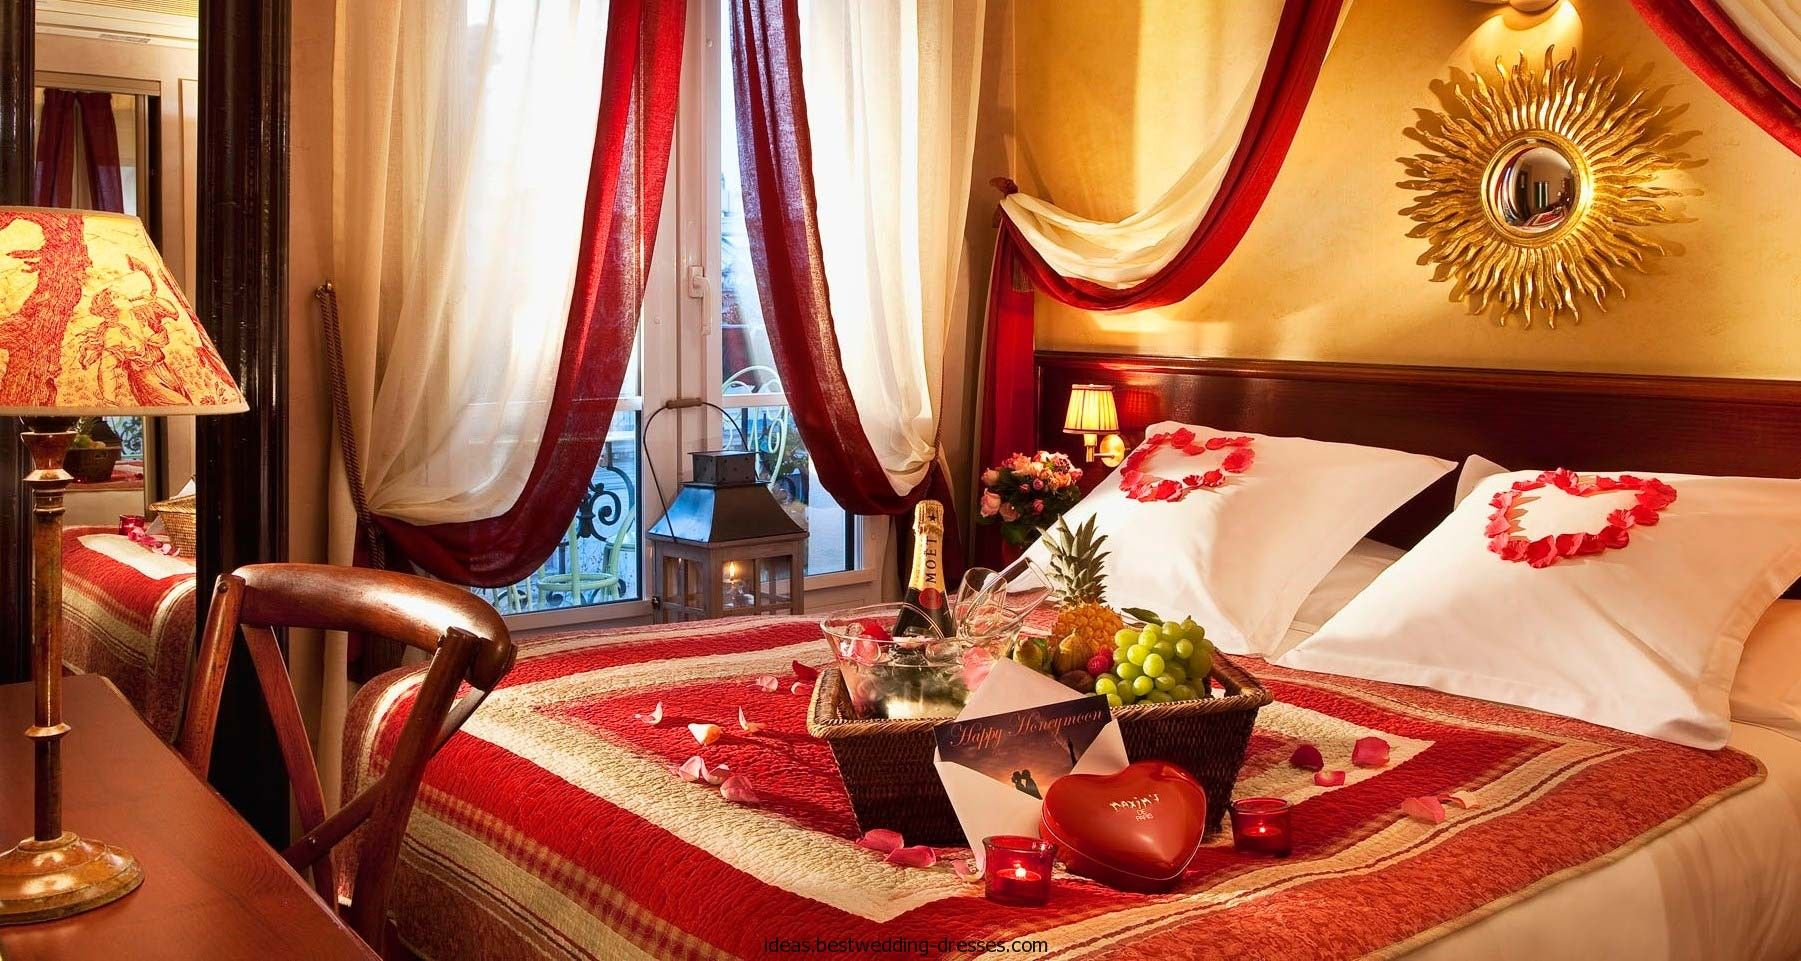 Bedroom decorating ideas for wedding night - Room Decorations